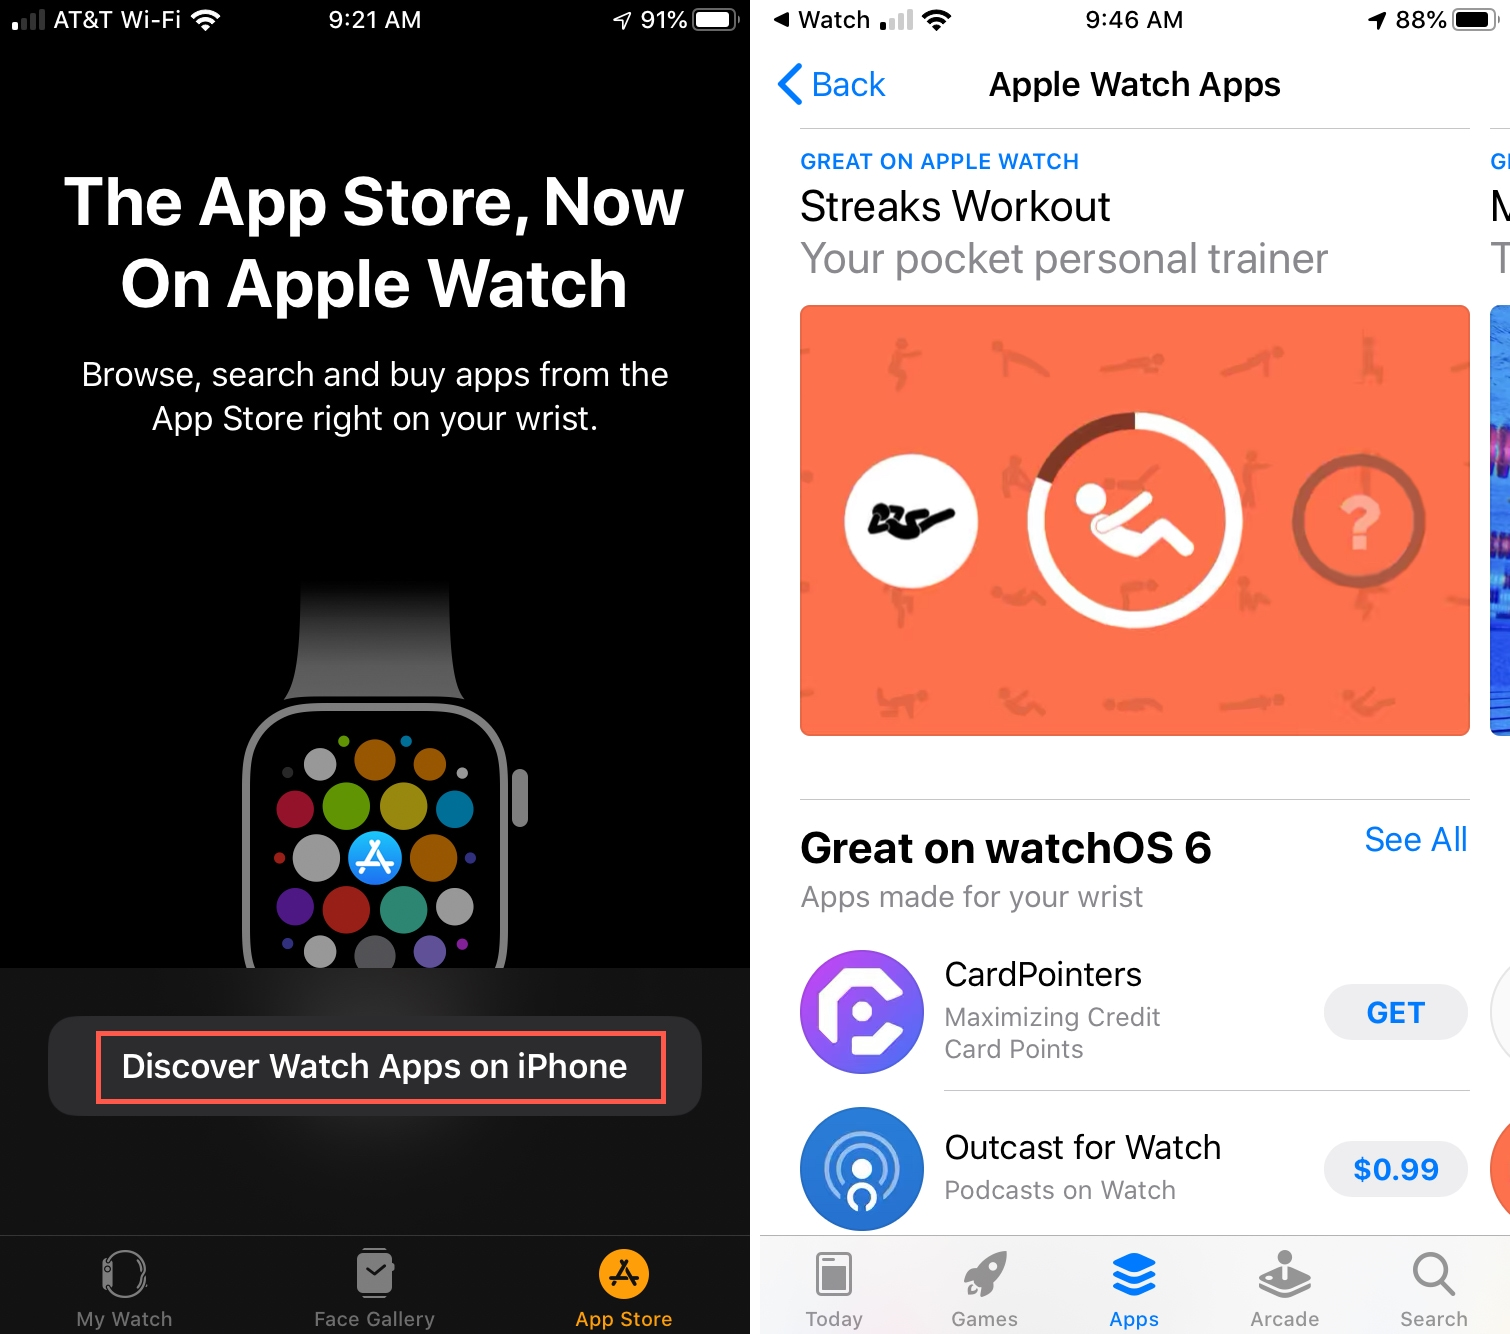 Apple Watch App Store Watch App